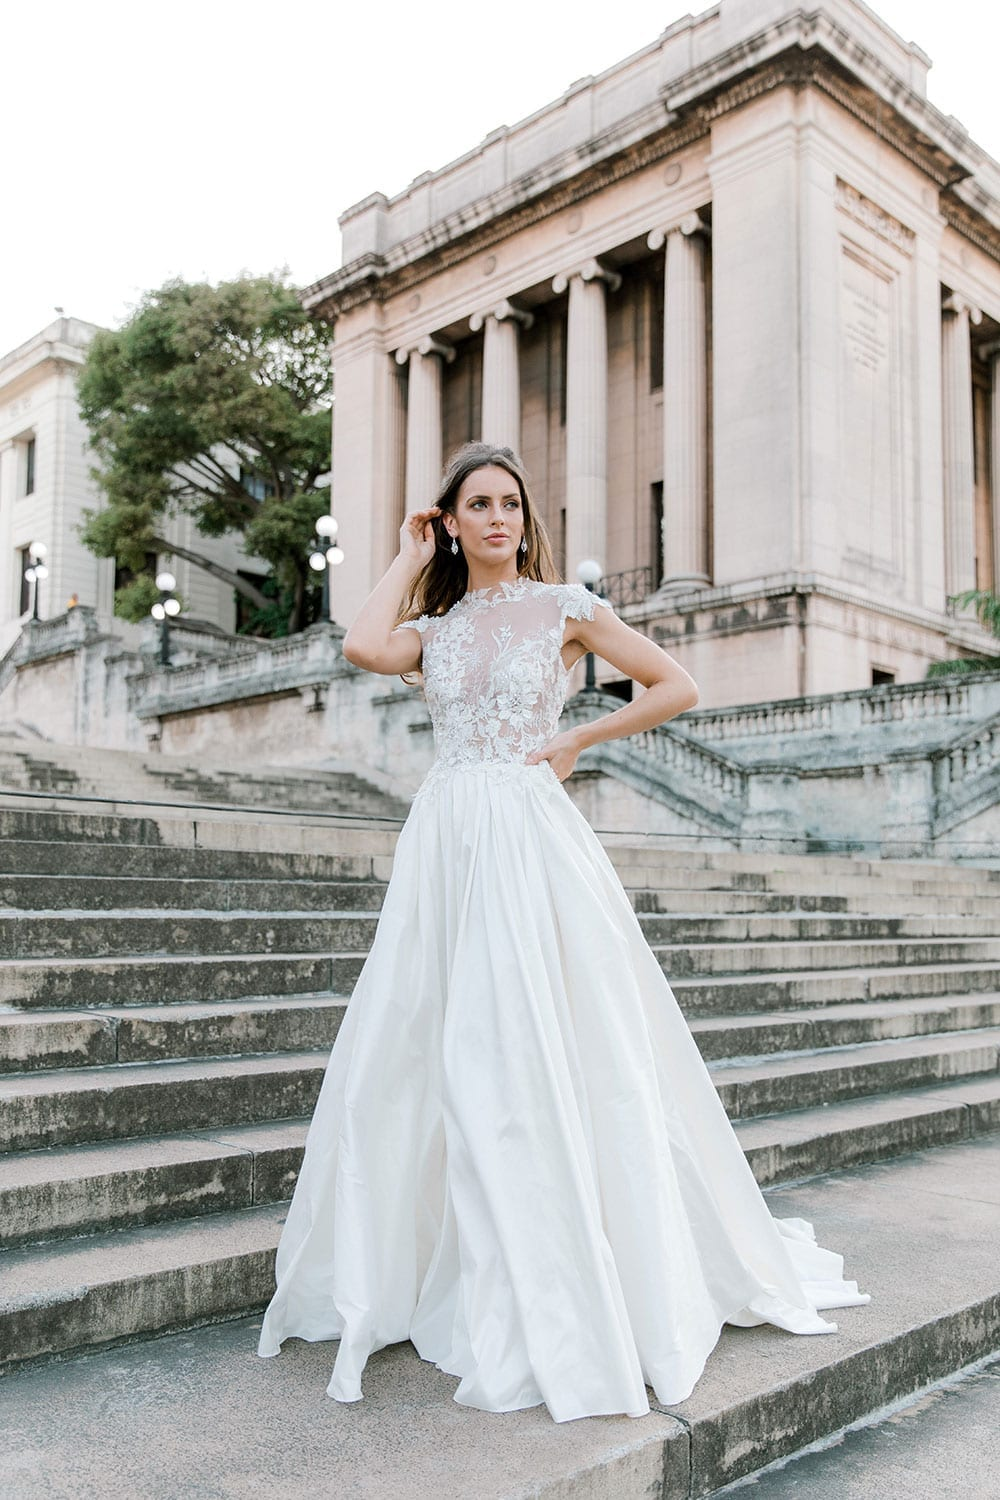 Model wearing Vinka Design Annalie Wedding Dress, a Beaded Lace High Neck Silk Wedding Gown in front of steps in Havana